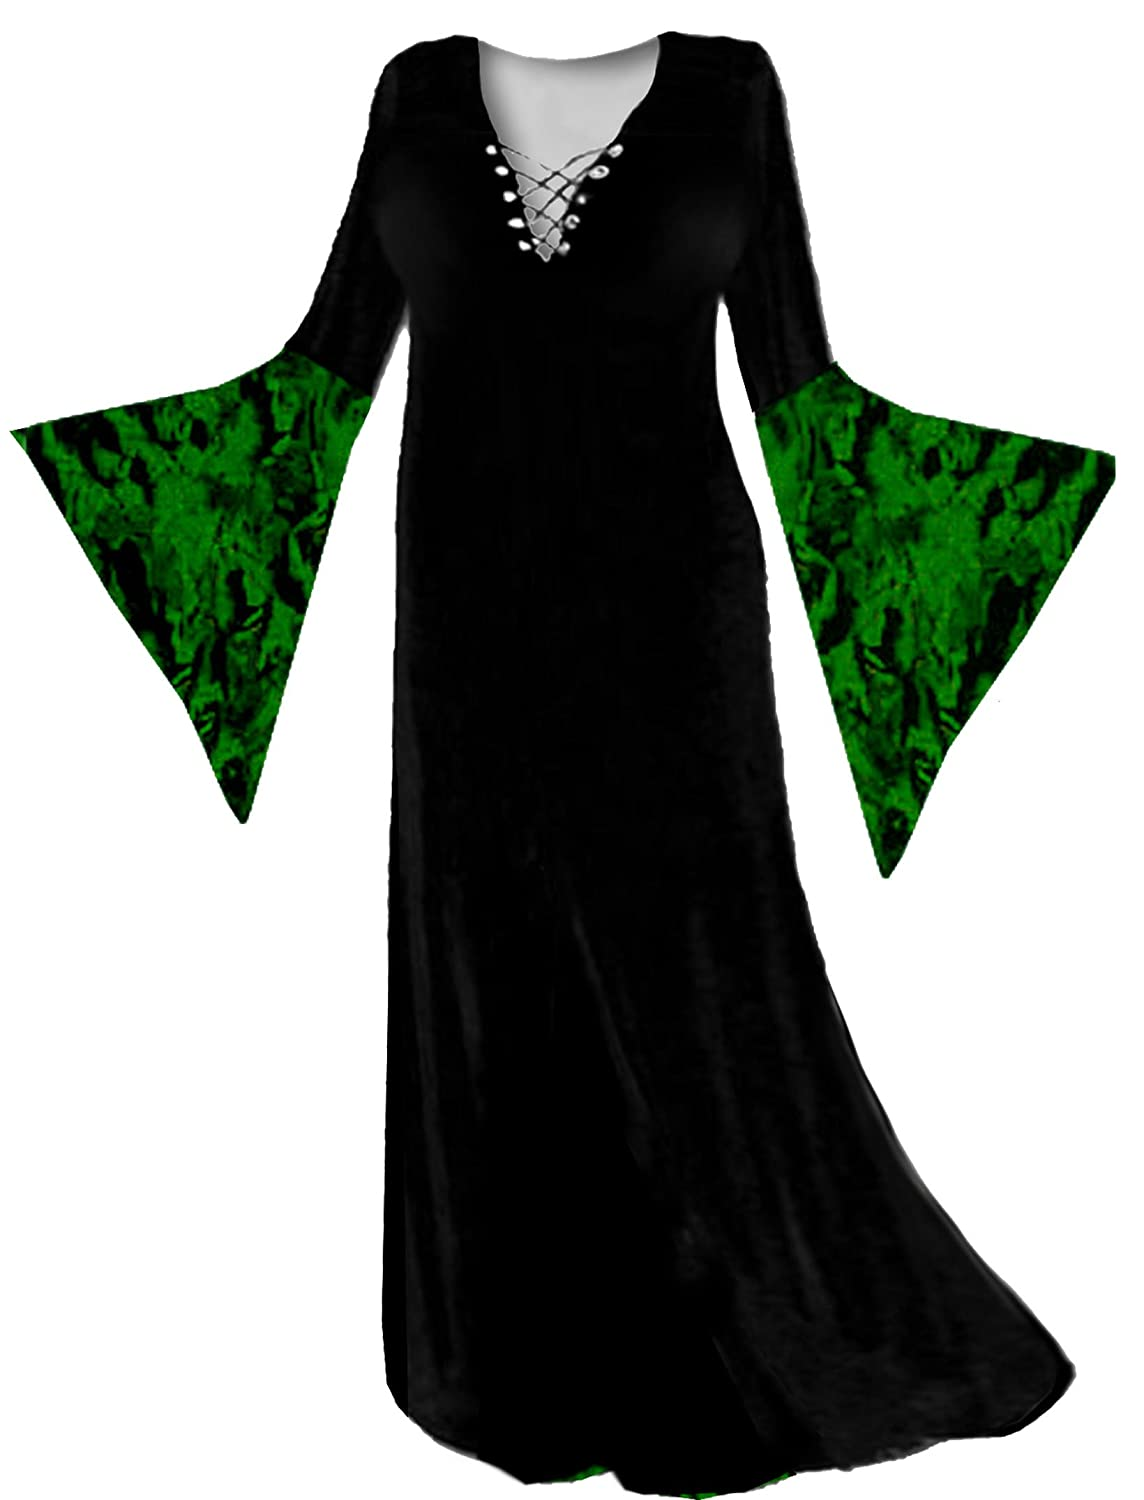 amazoncom womens green witch velvet plus size supersize halloween costume deluxe kit w wig clothing - Green Halloween Dress